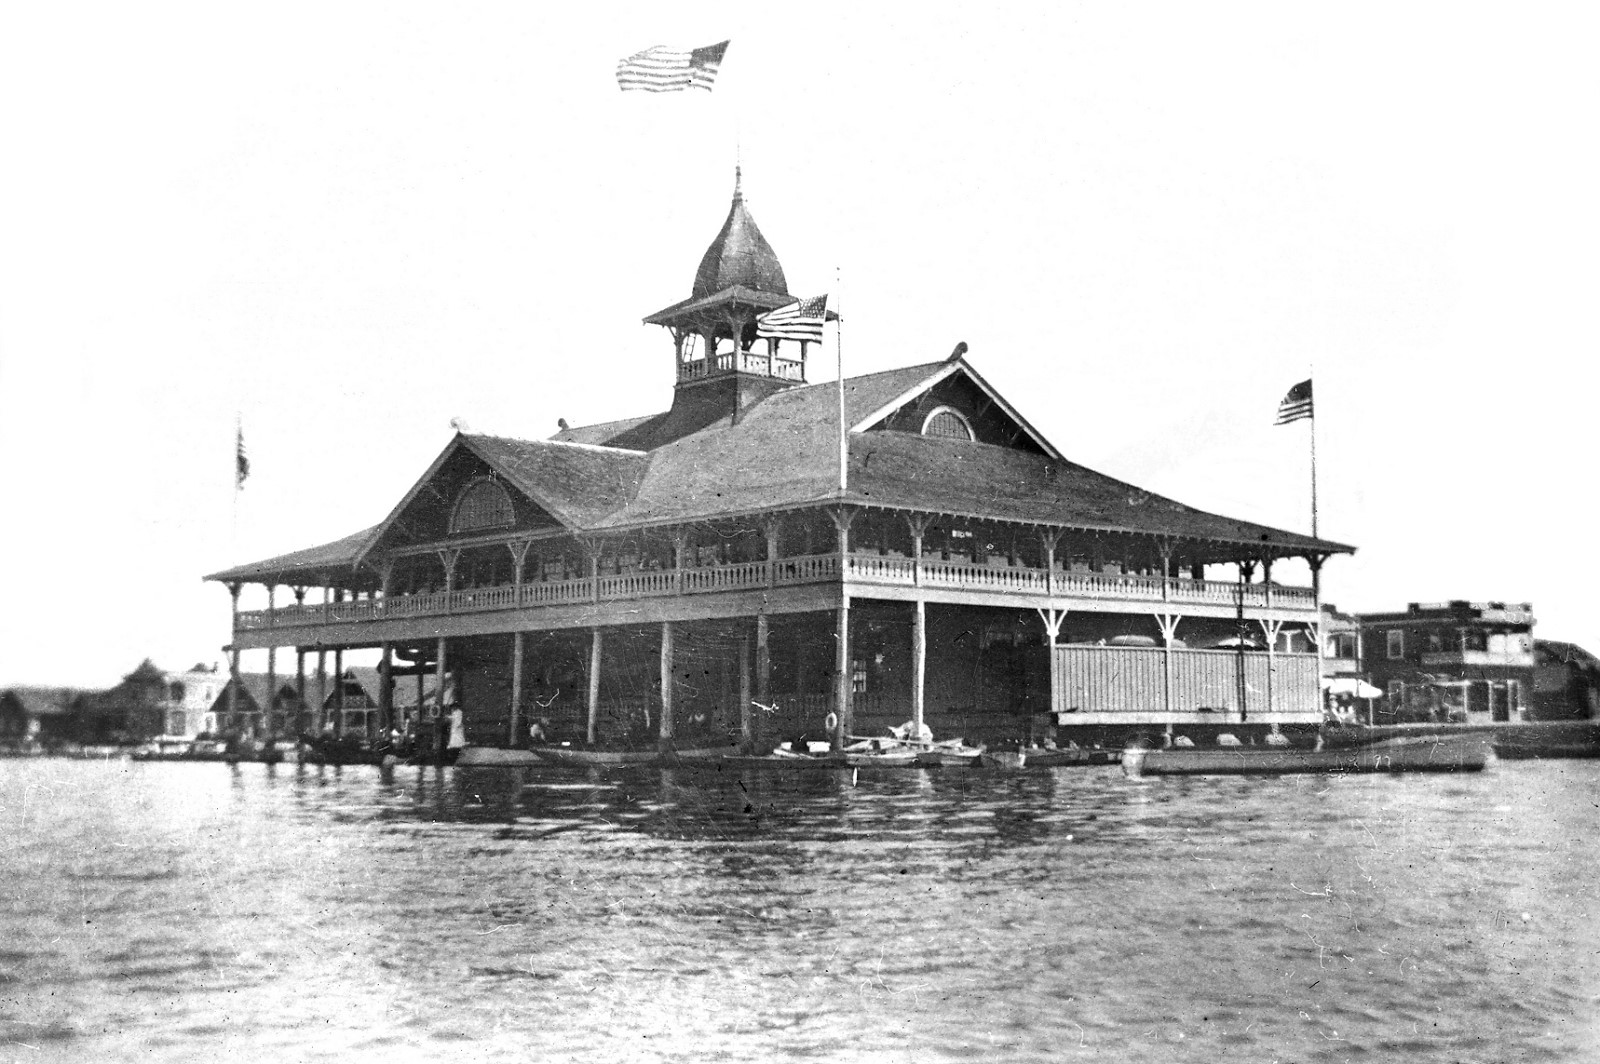 Balboa Pavilion in the early 1900s / Photo courtesy Orange County Archives.